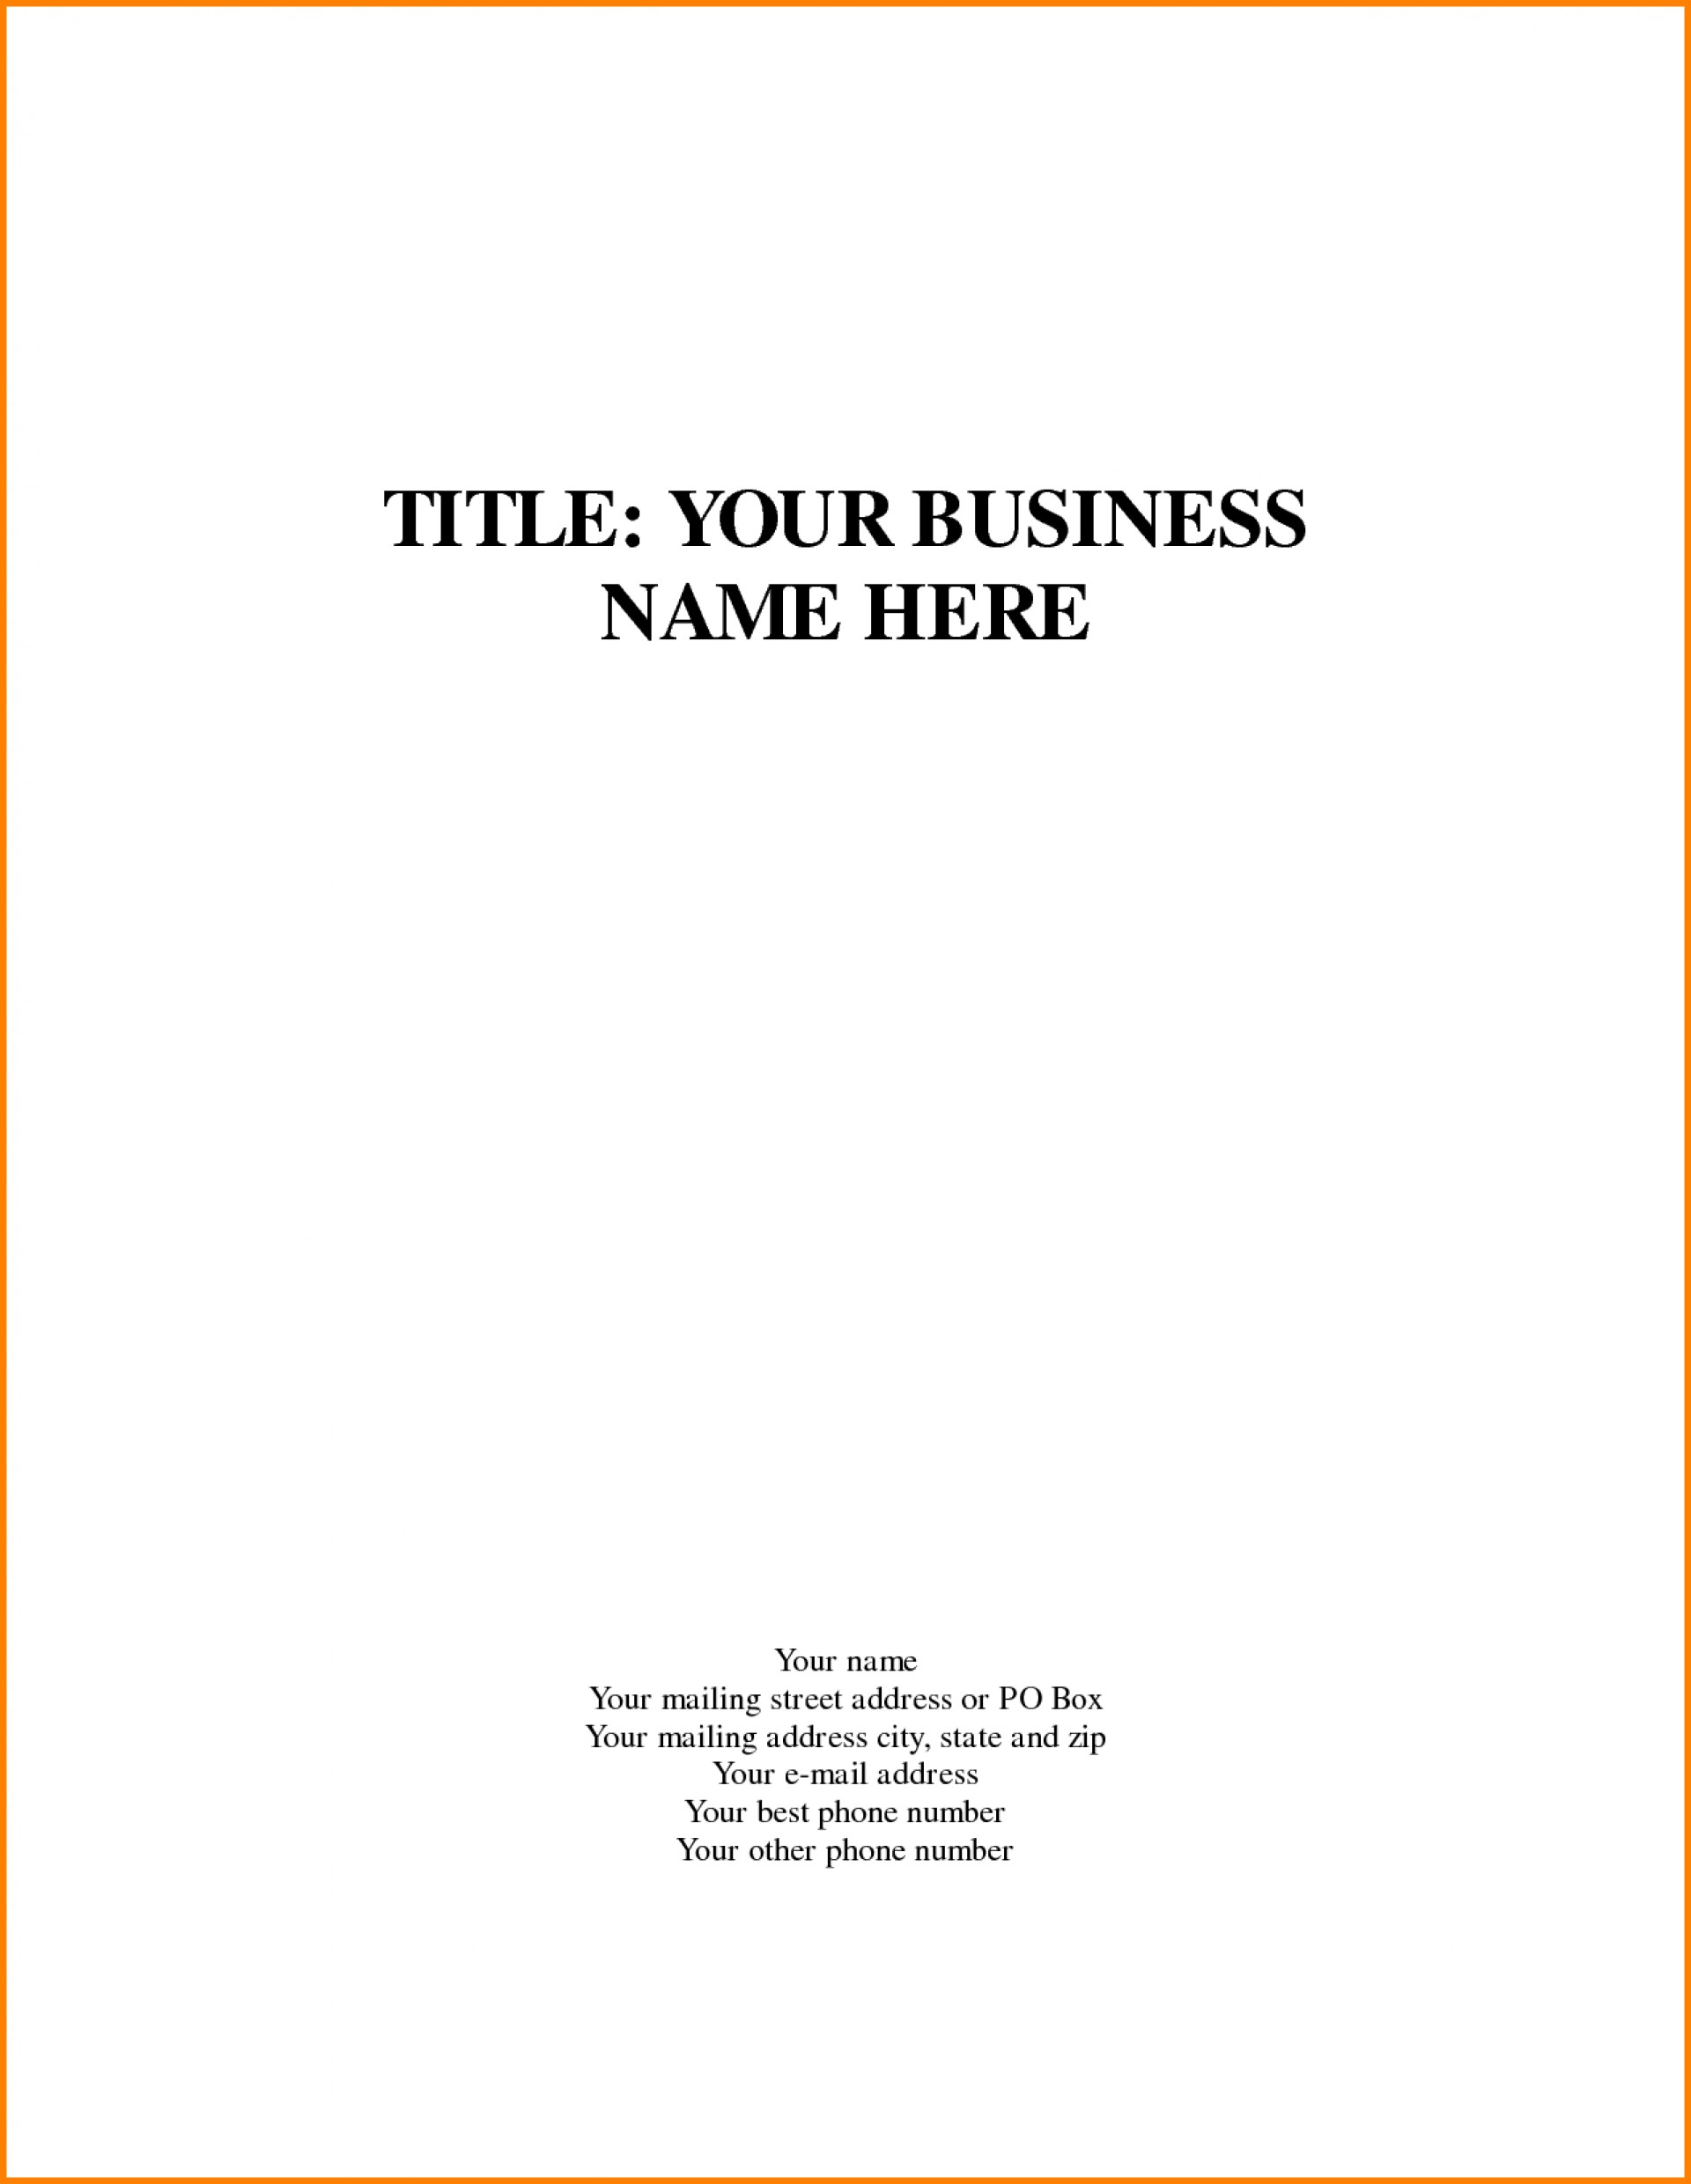 010 Research Paper Apa Cover Page Impressive Template Sample Title Format 1920